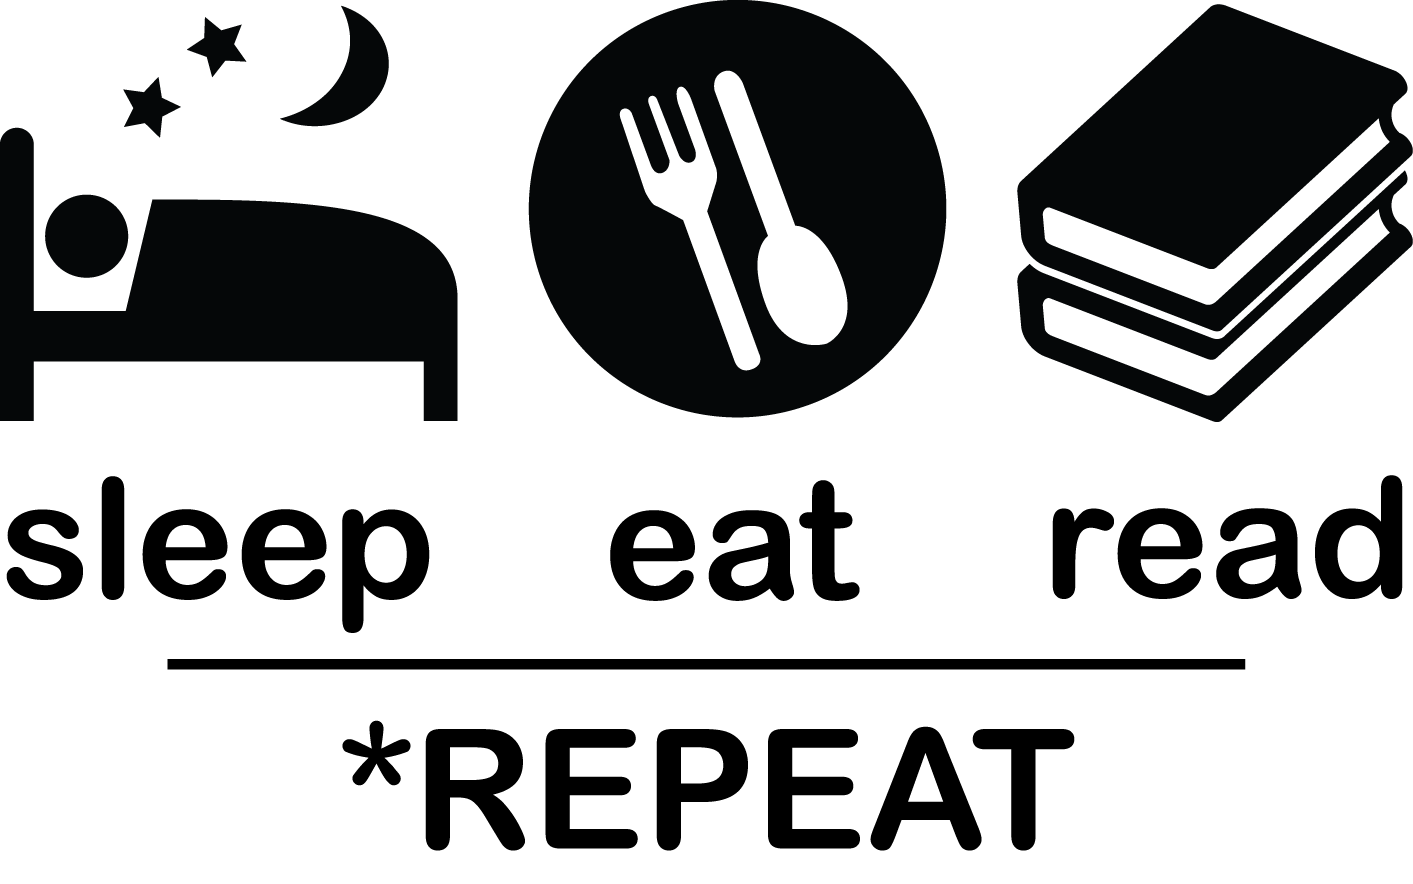 sleep, eat, read *repeat